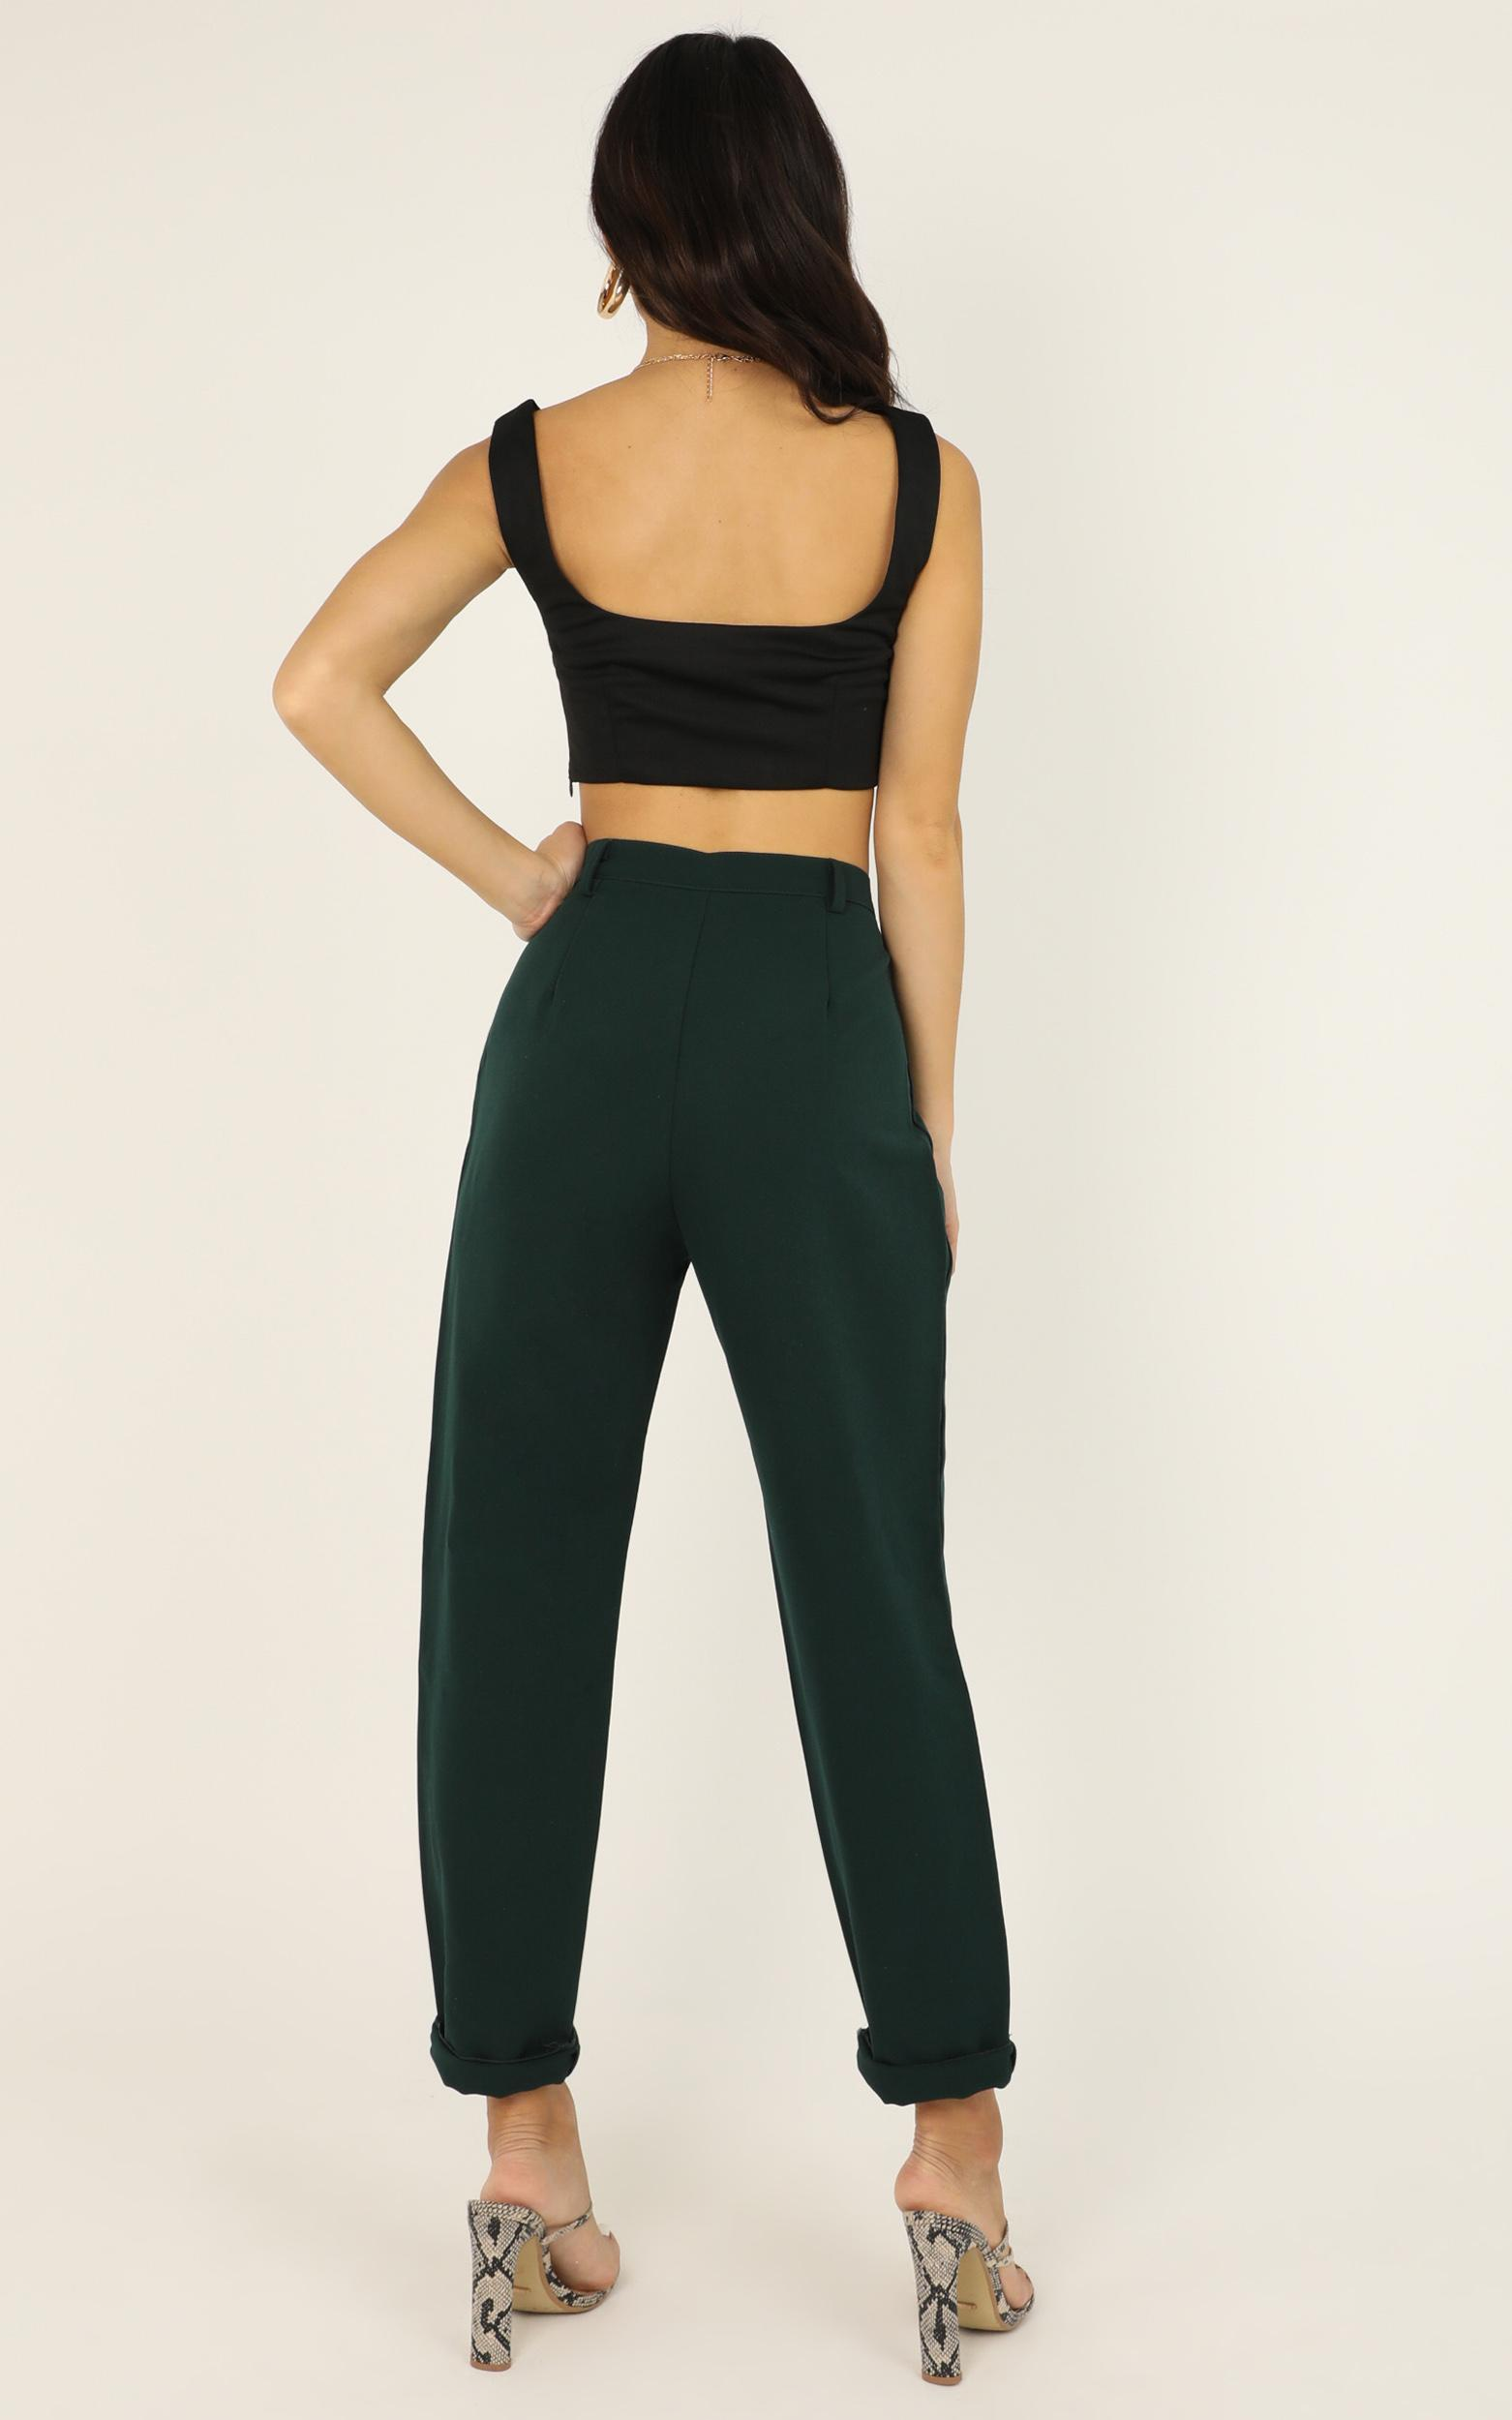 On The Other Side Pants in emerald - 12 (L), Green, hi-res image number null